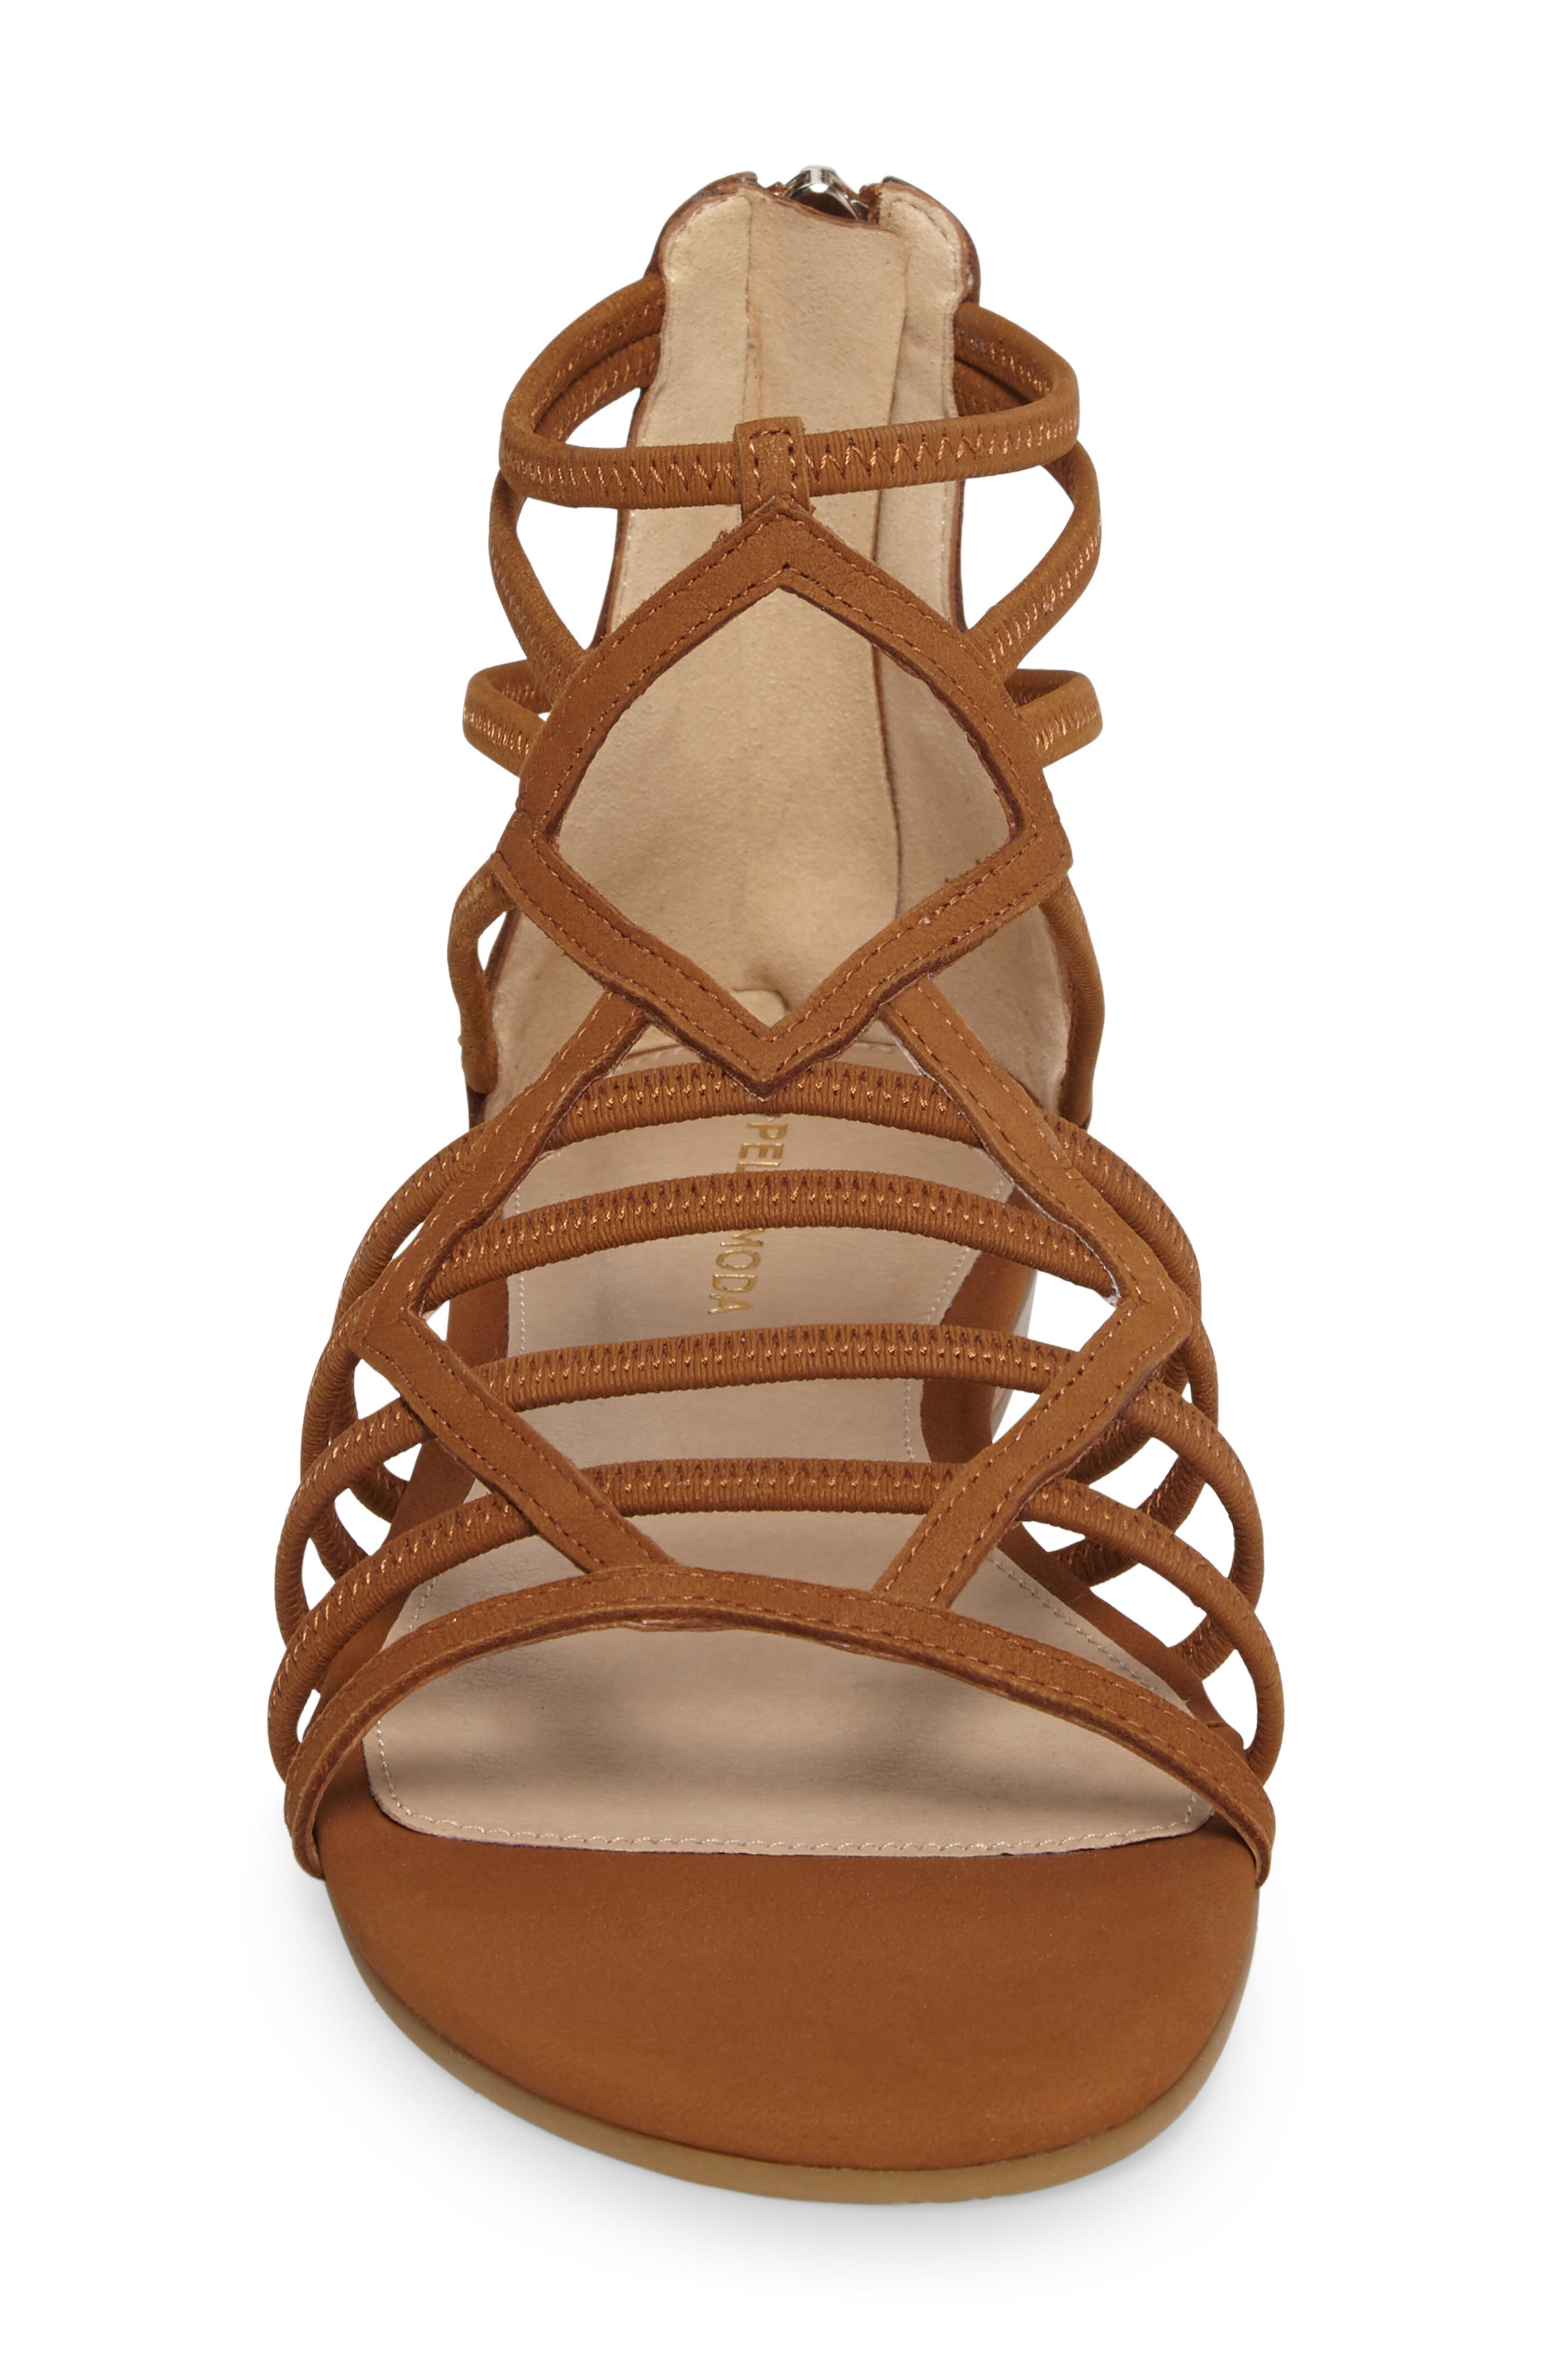 Brazil Strappy Sandal,                             Alternate thumbnail 4, color,                             Luggage Leather